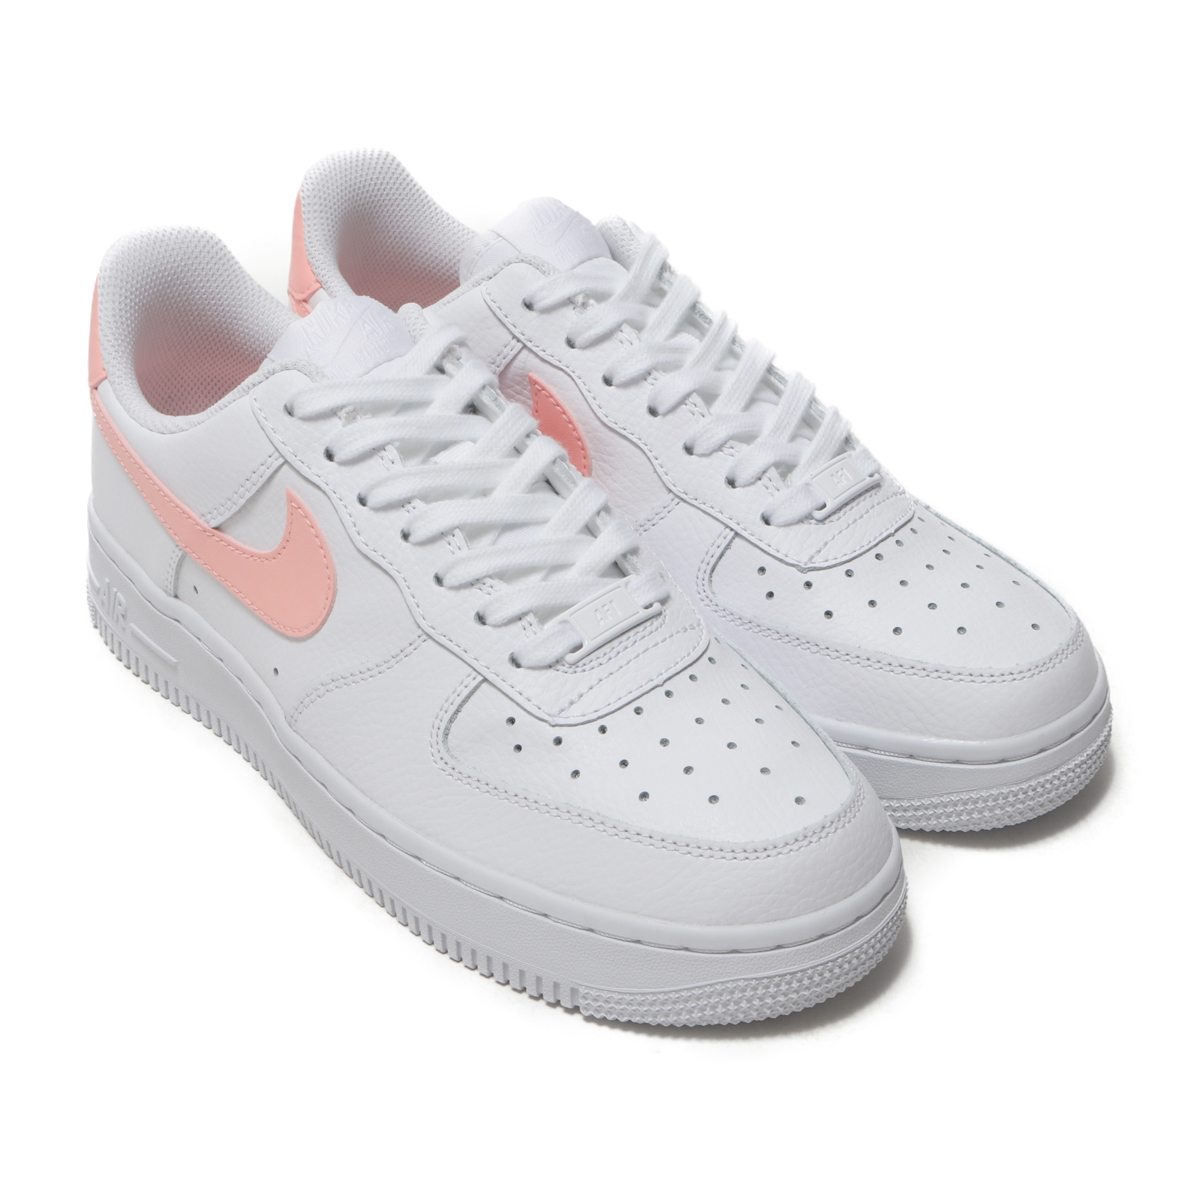 low priced e7dbd 211a9 ... Pink Gum Med NIKE WMNS AIR FORCE 1 07 (Nike women air force 1 07) WHITE  ORACLE ...